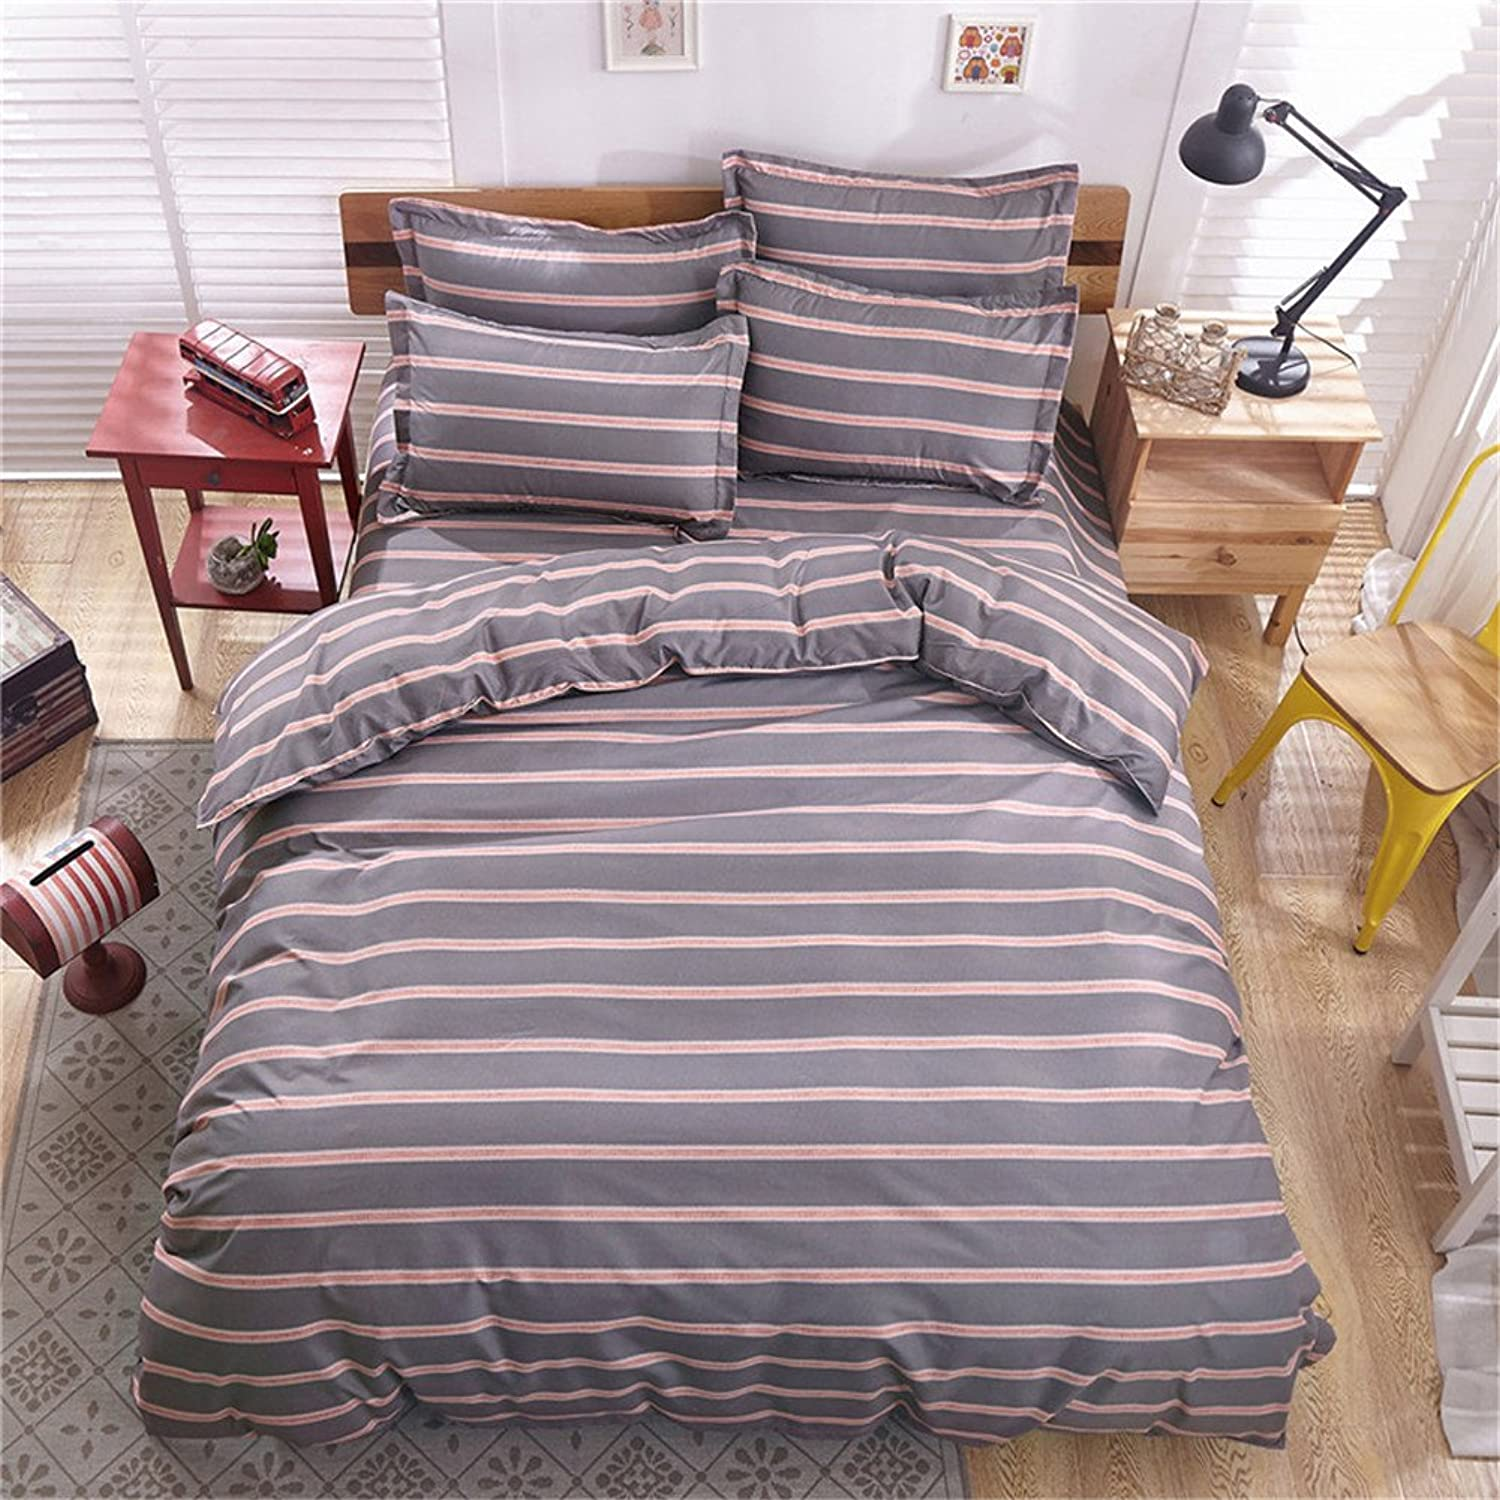 Bestmemories Soft Feeling Microfiber Bed Sheets Set Match Mixed Stripe Pattern Four-Piece Bedding Set with Duvet Cover Flat Sheet and Two Pillowcases for Home Bedroom Guest Room, Queen (B)